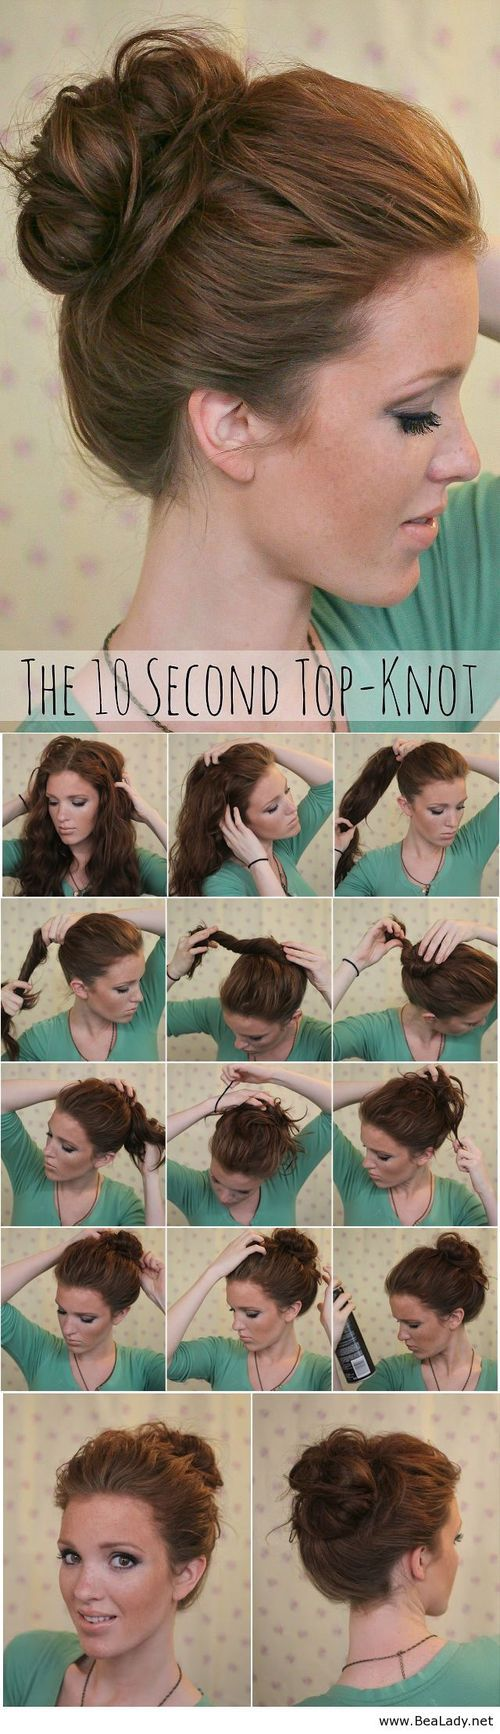 Quick and easy hairstyles and i donut even need to explain it